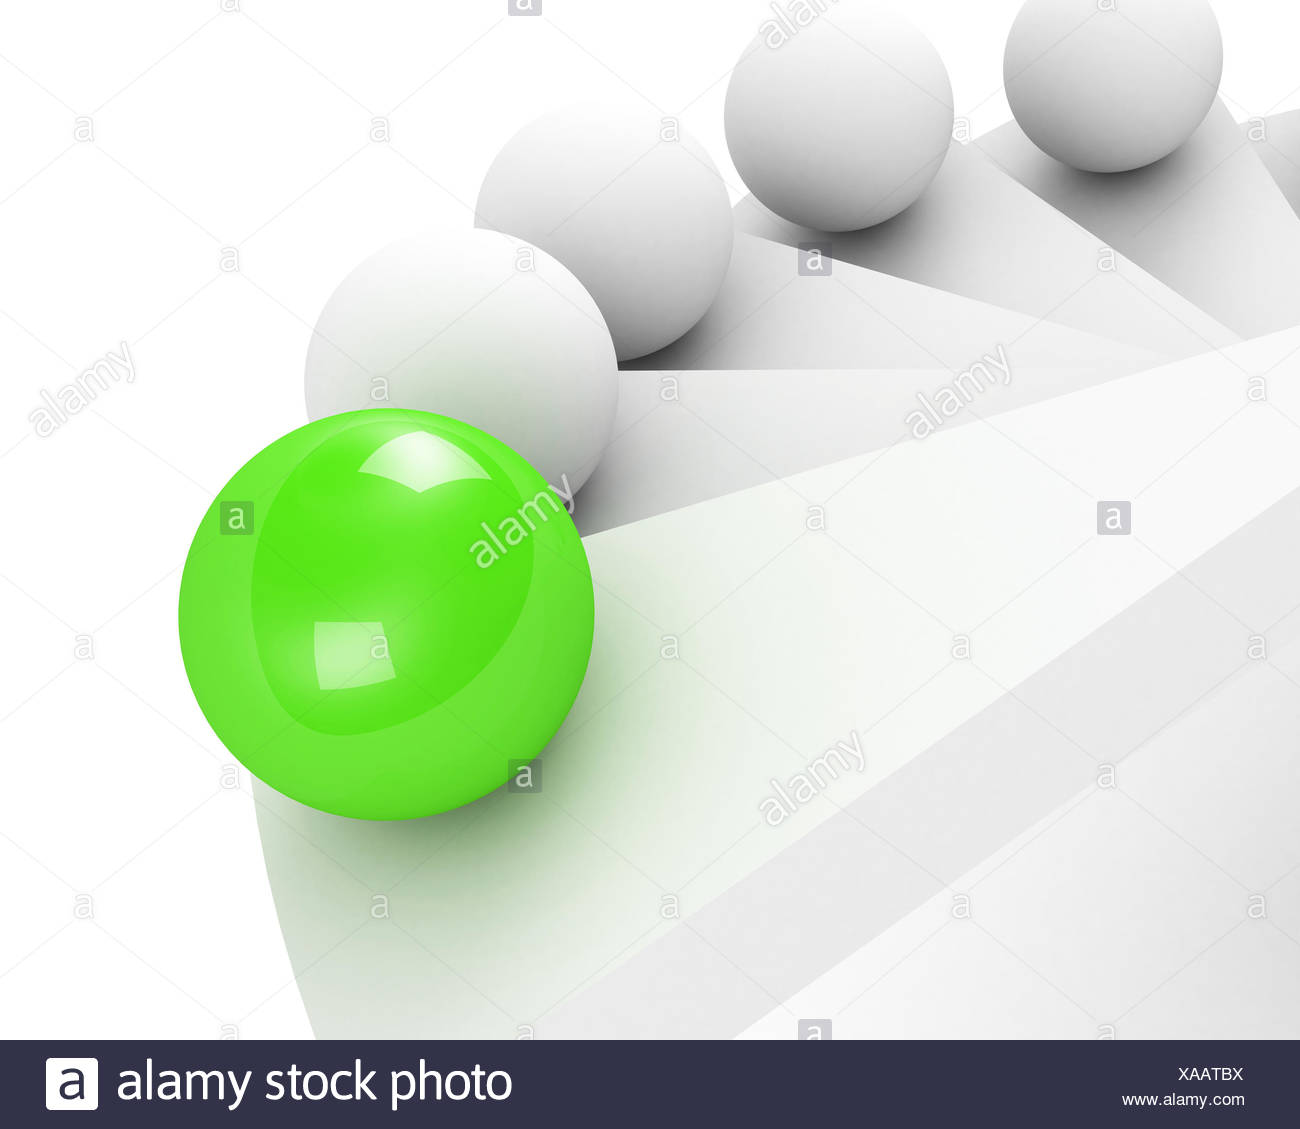 stairs up to success. leadership concept. green - Stock Image